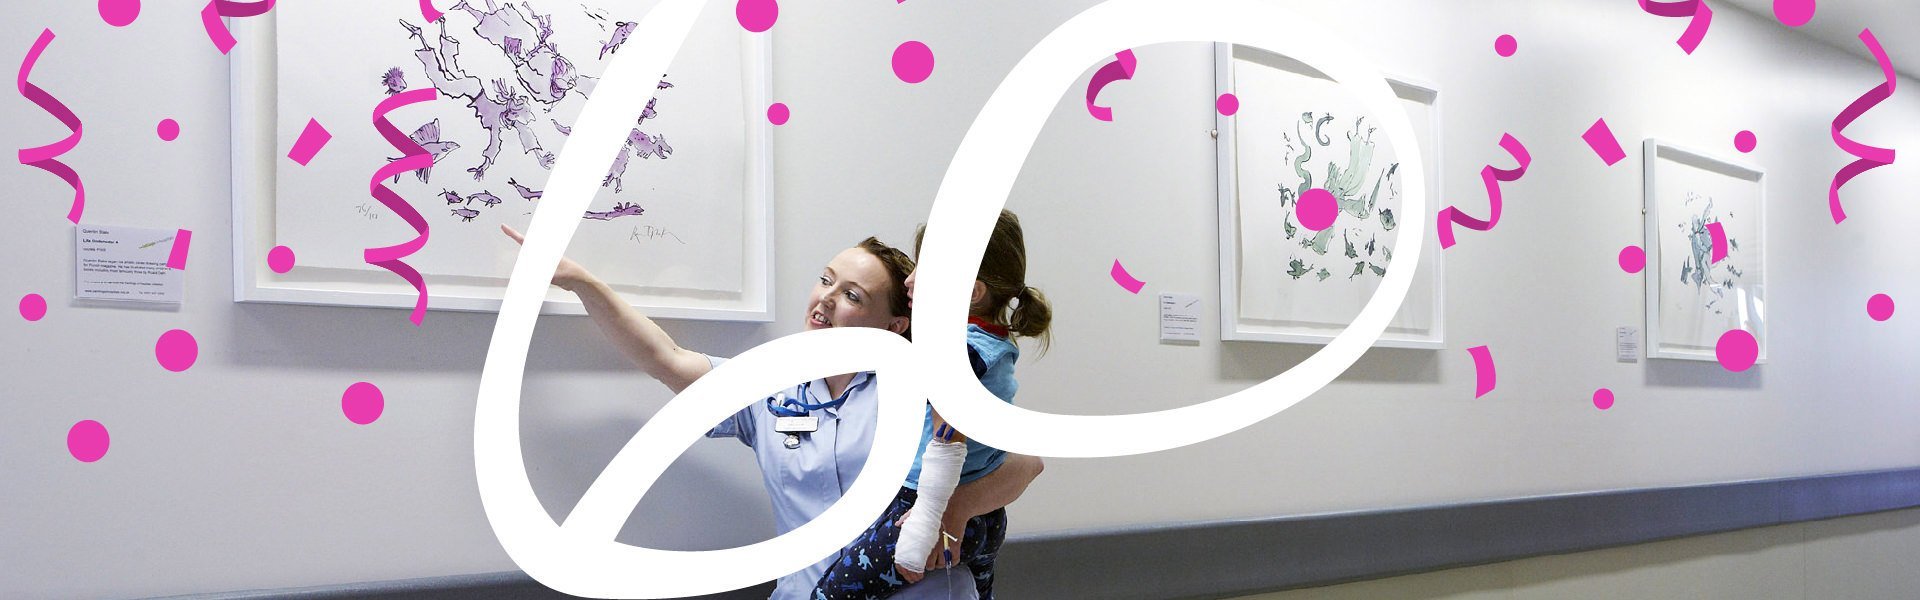 2019 is Paintings in Hospitals 60th anniversary. Can you help us raise £60,000 to inspire and uplift patients and carers across the country?